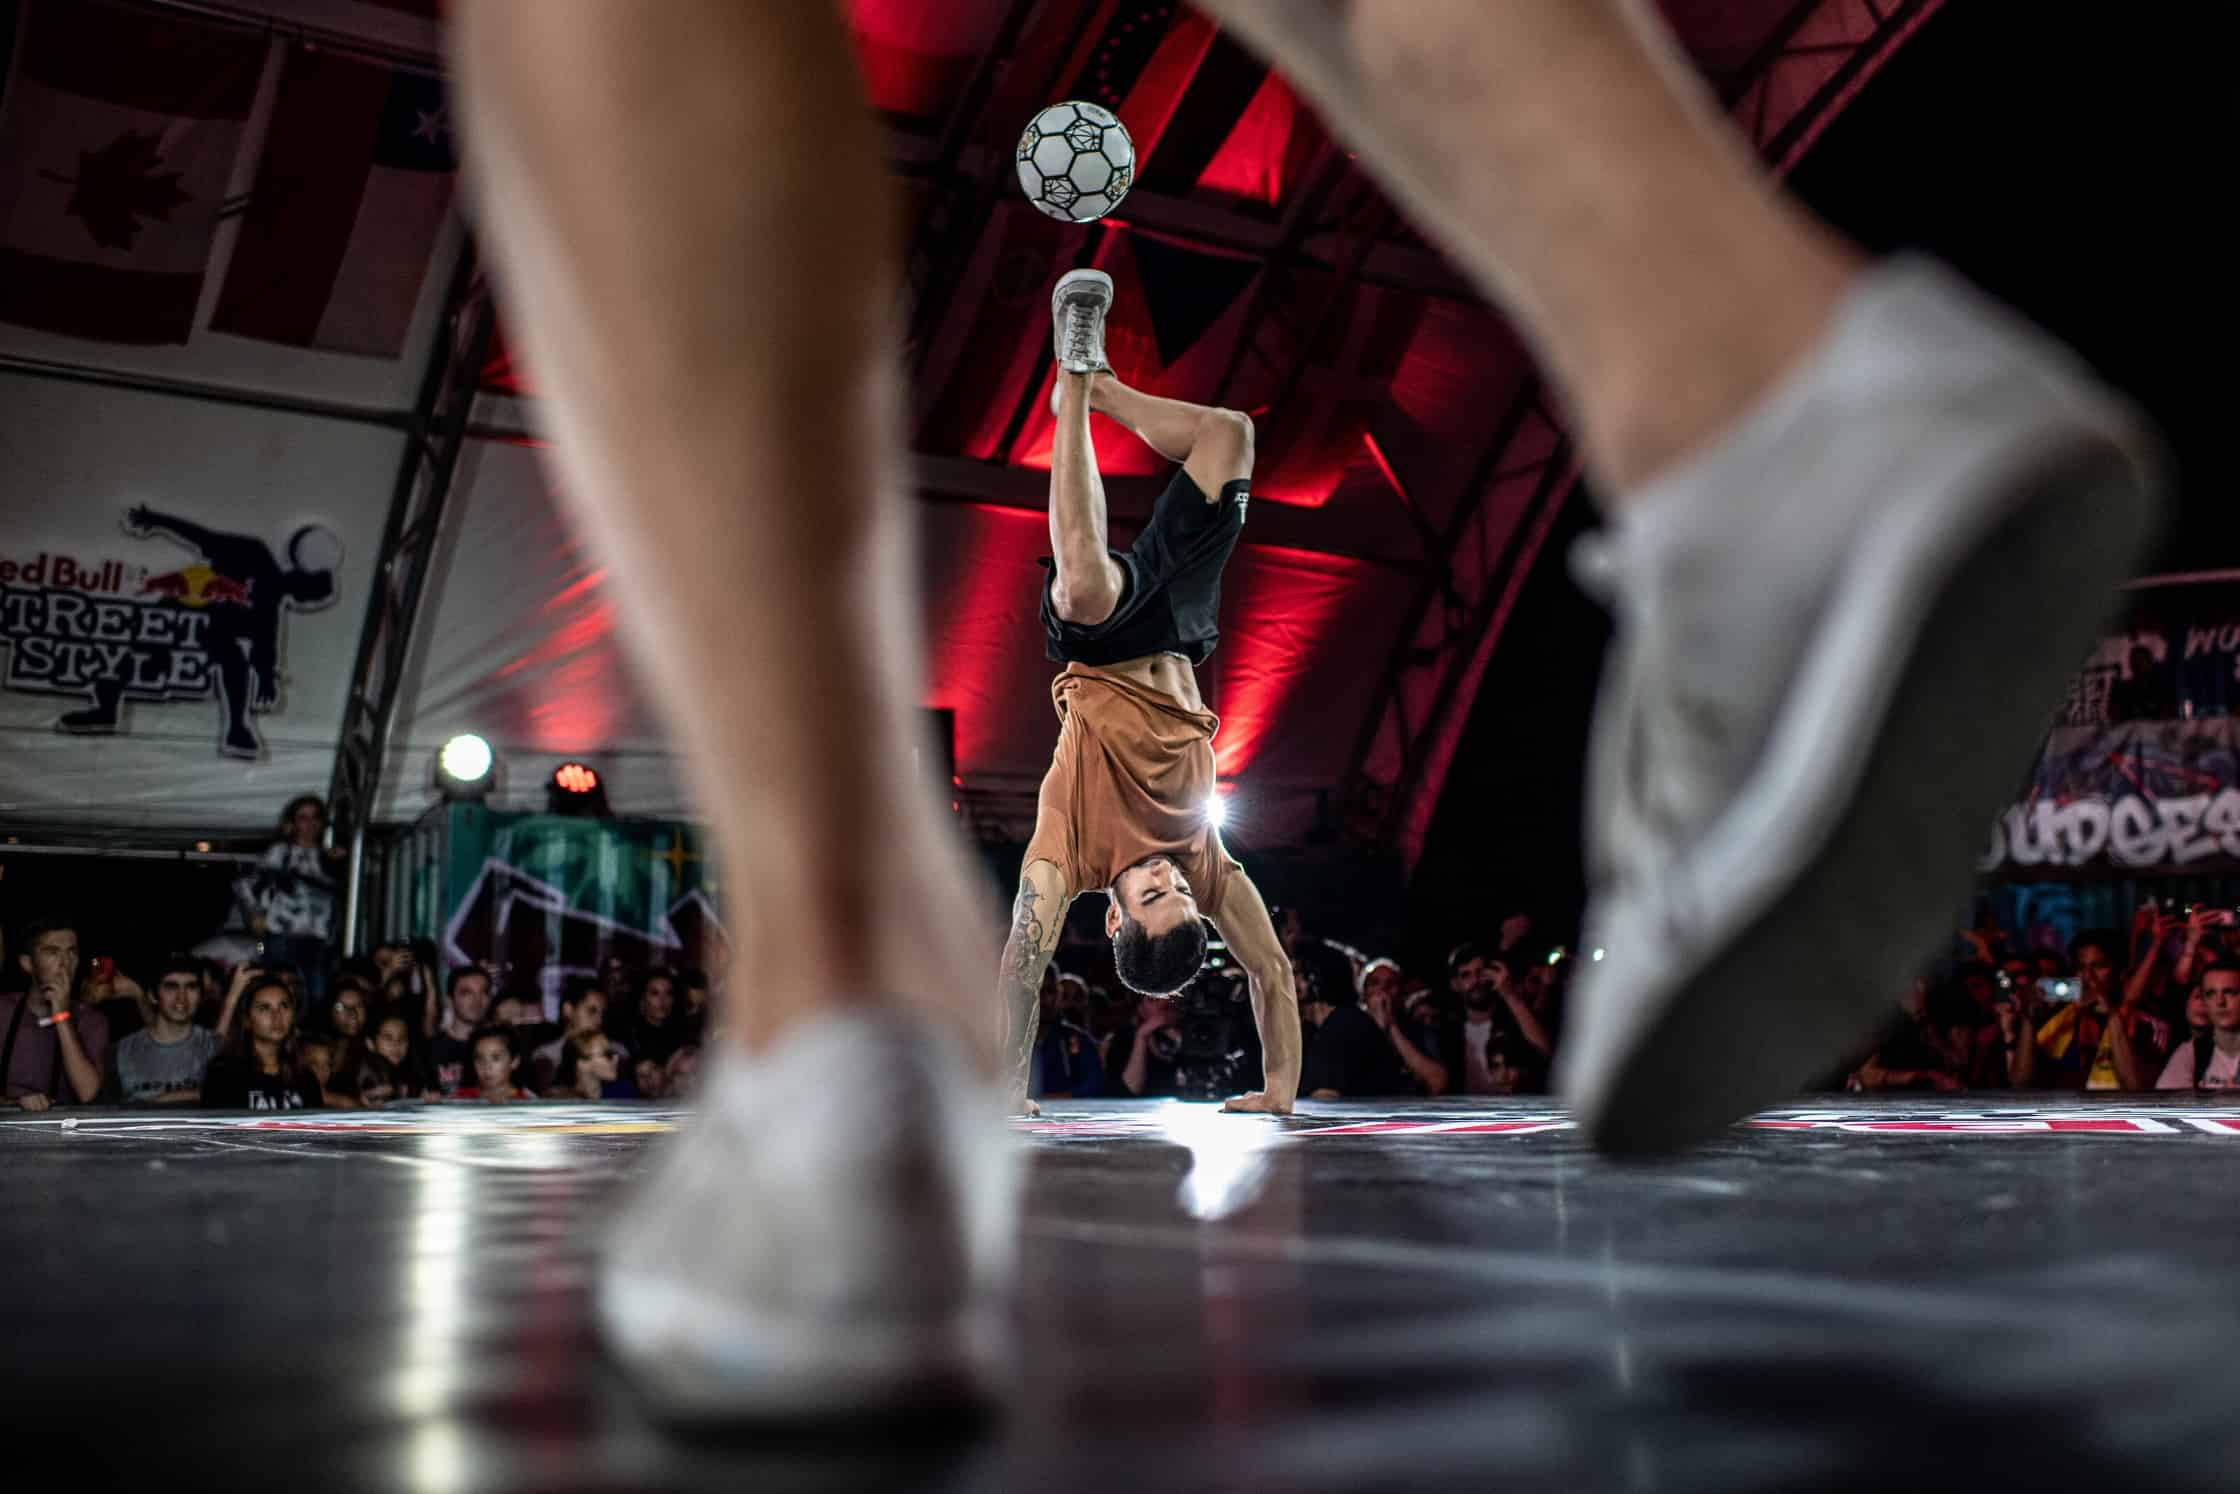 """Ricardinho"" Chahini de Araujo (C) of Brazil competes during the Red Bull Street Style World Final at Wynwood Marketplace, Miami, USA on November 15, 2019 // Dean Treml/Red Bull Content Pool // AP-226VPB8U91W11 // Usage for editorial use only //"